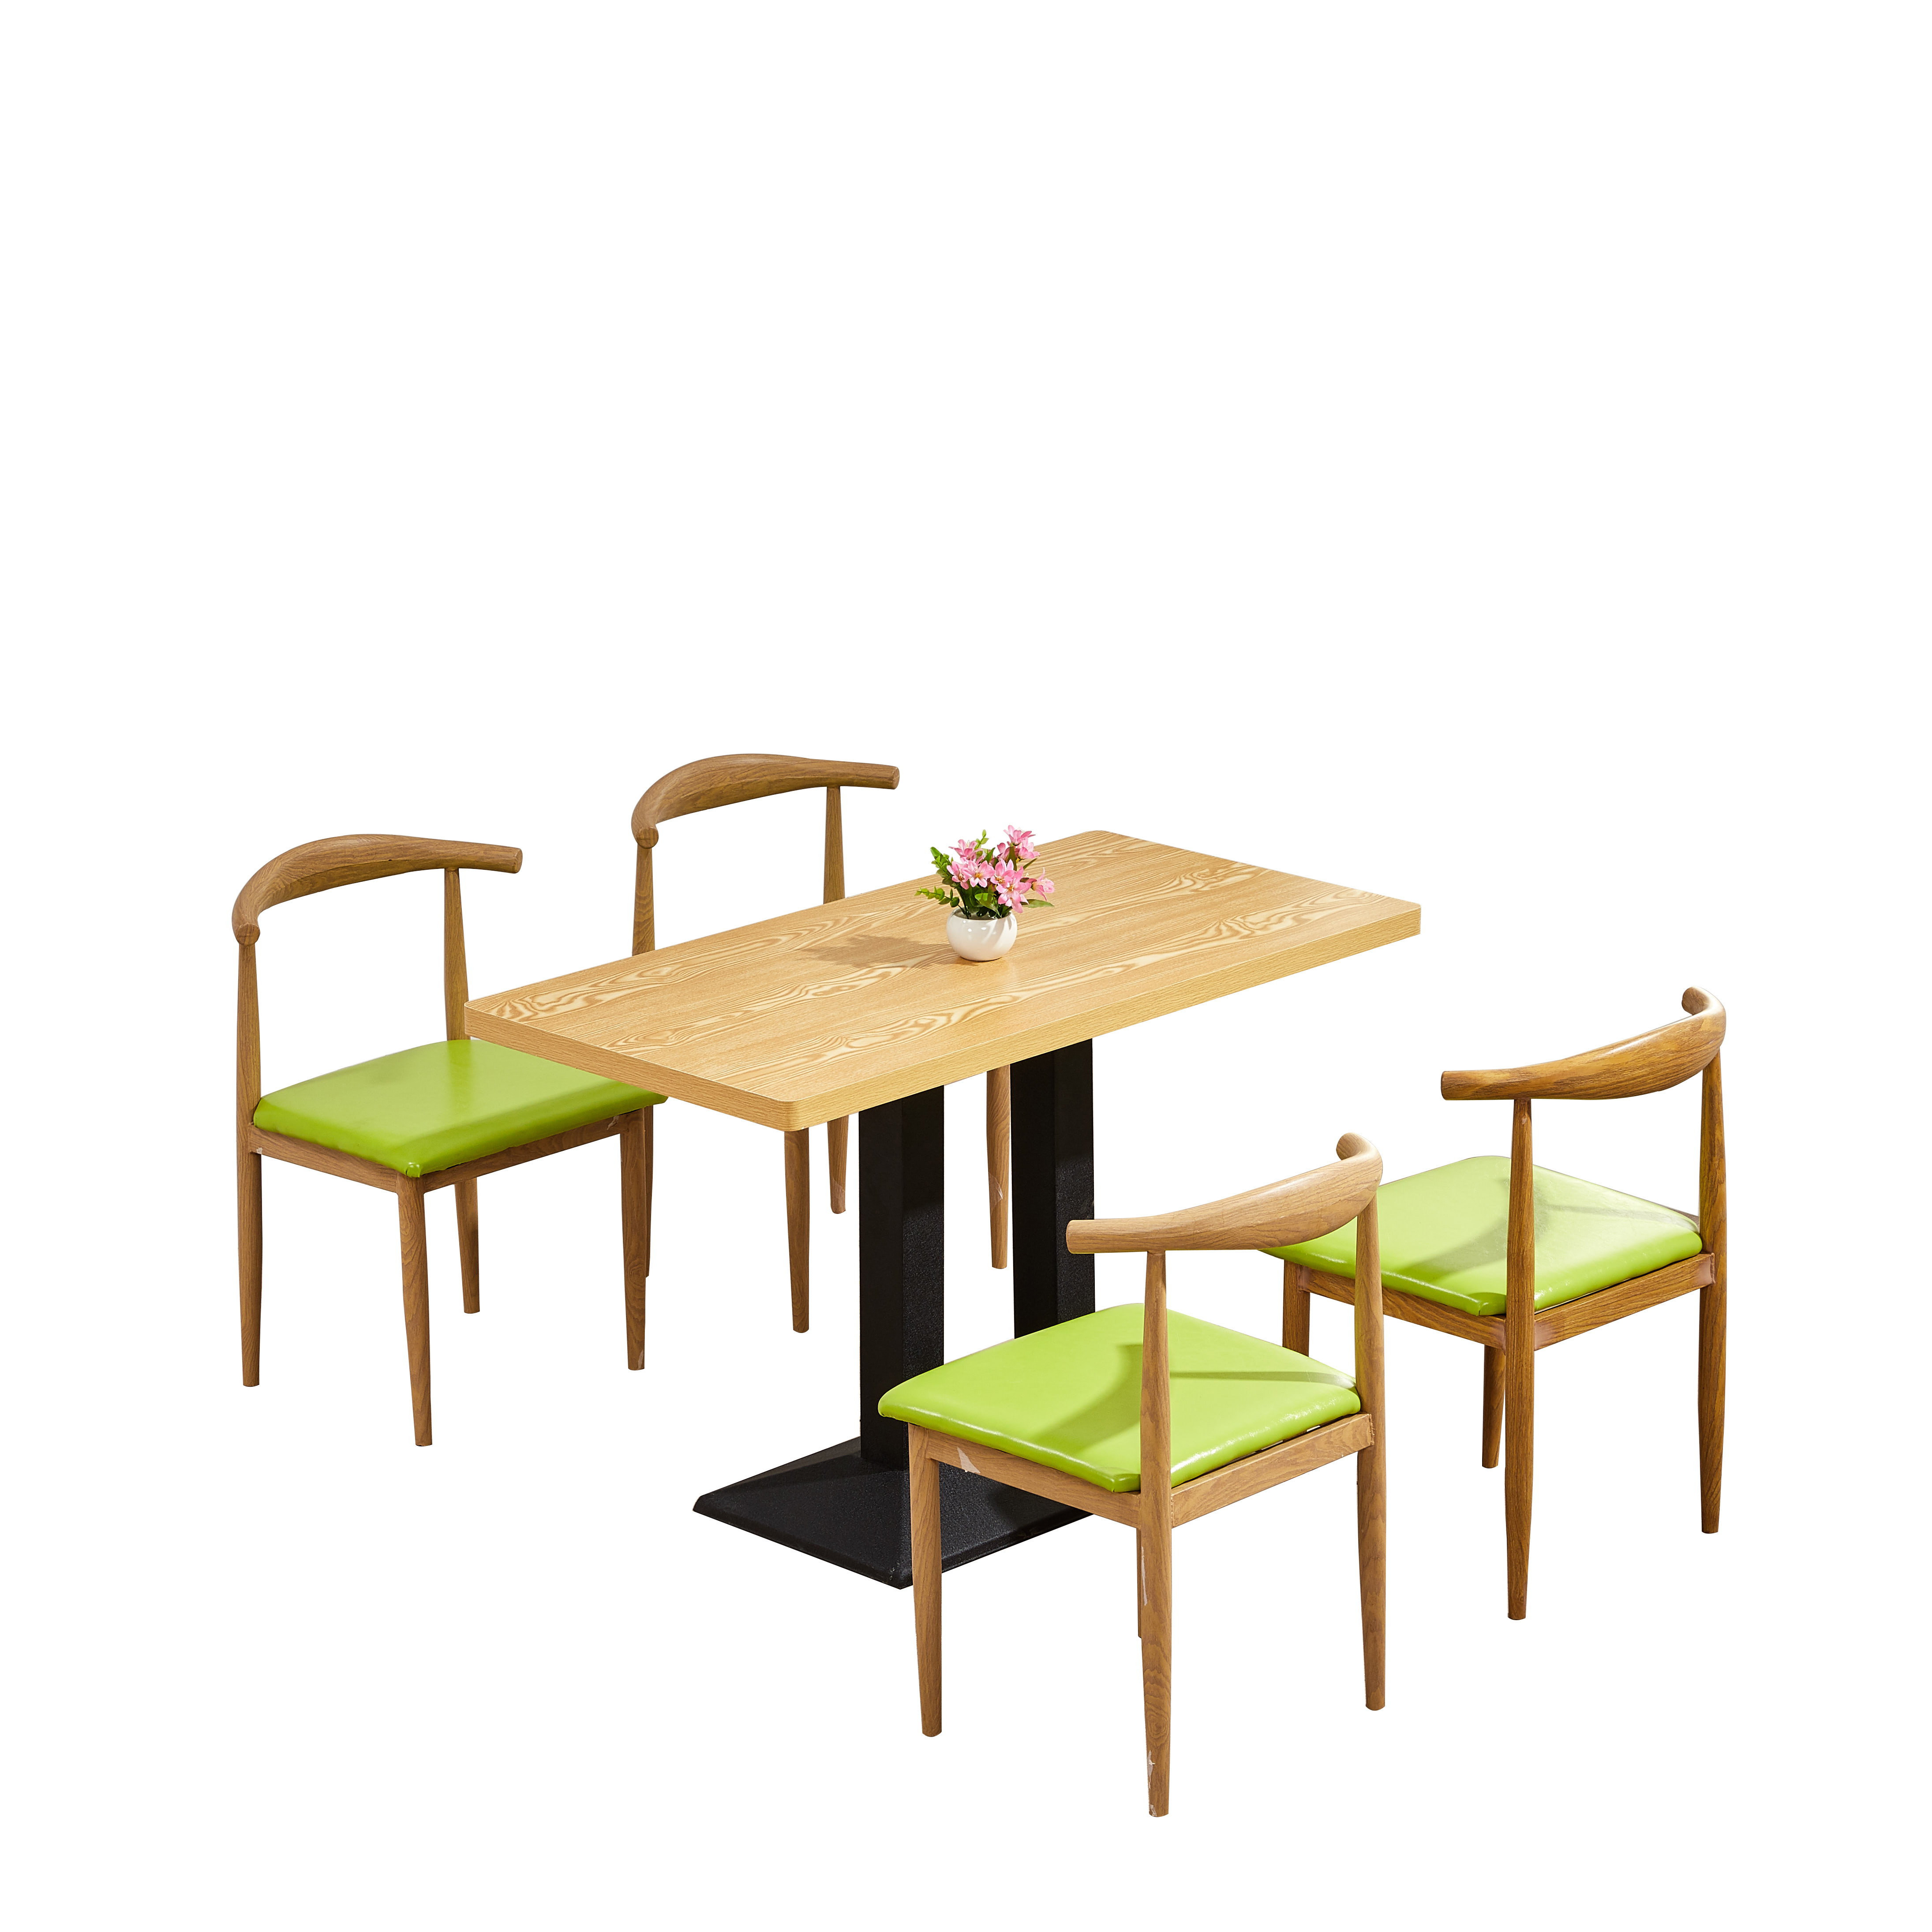 Fast Food Table And Chair Combination Snack Bar Cafe Restaurant Tea Shop Dining Table And Chair Imitation Solid Wood Iron Horn C